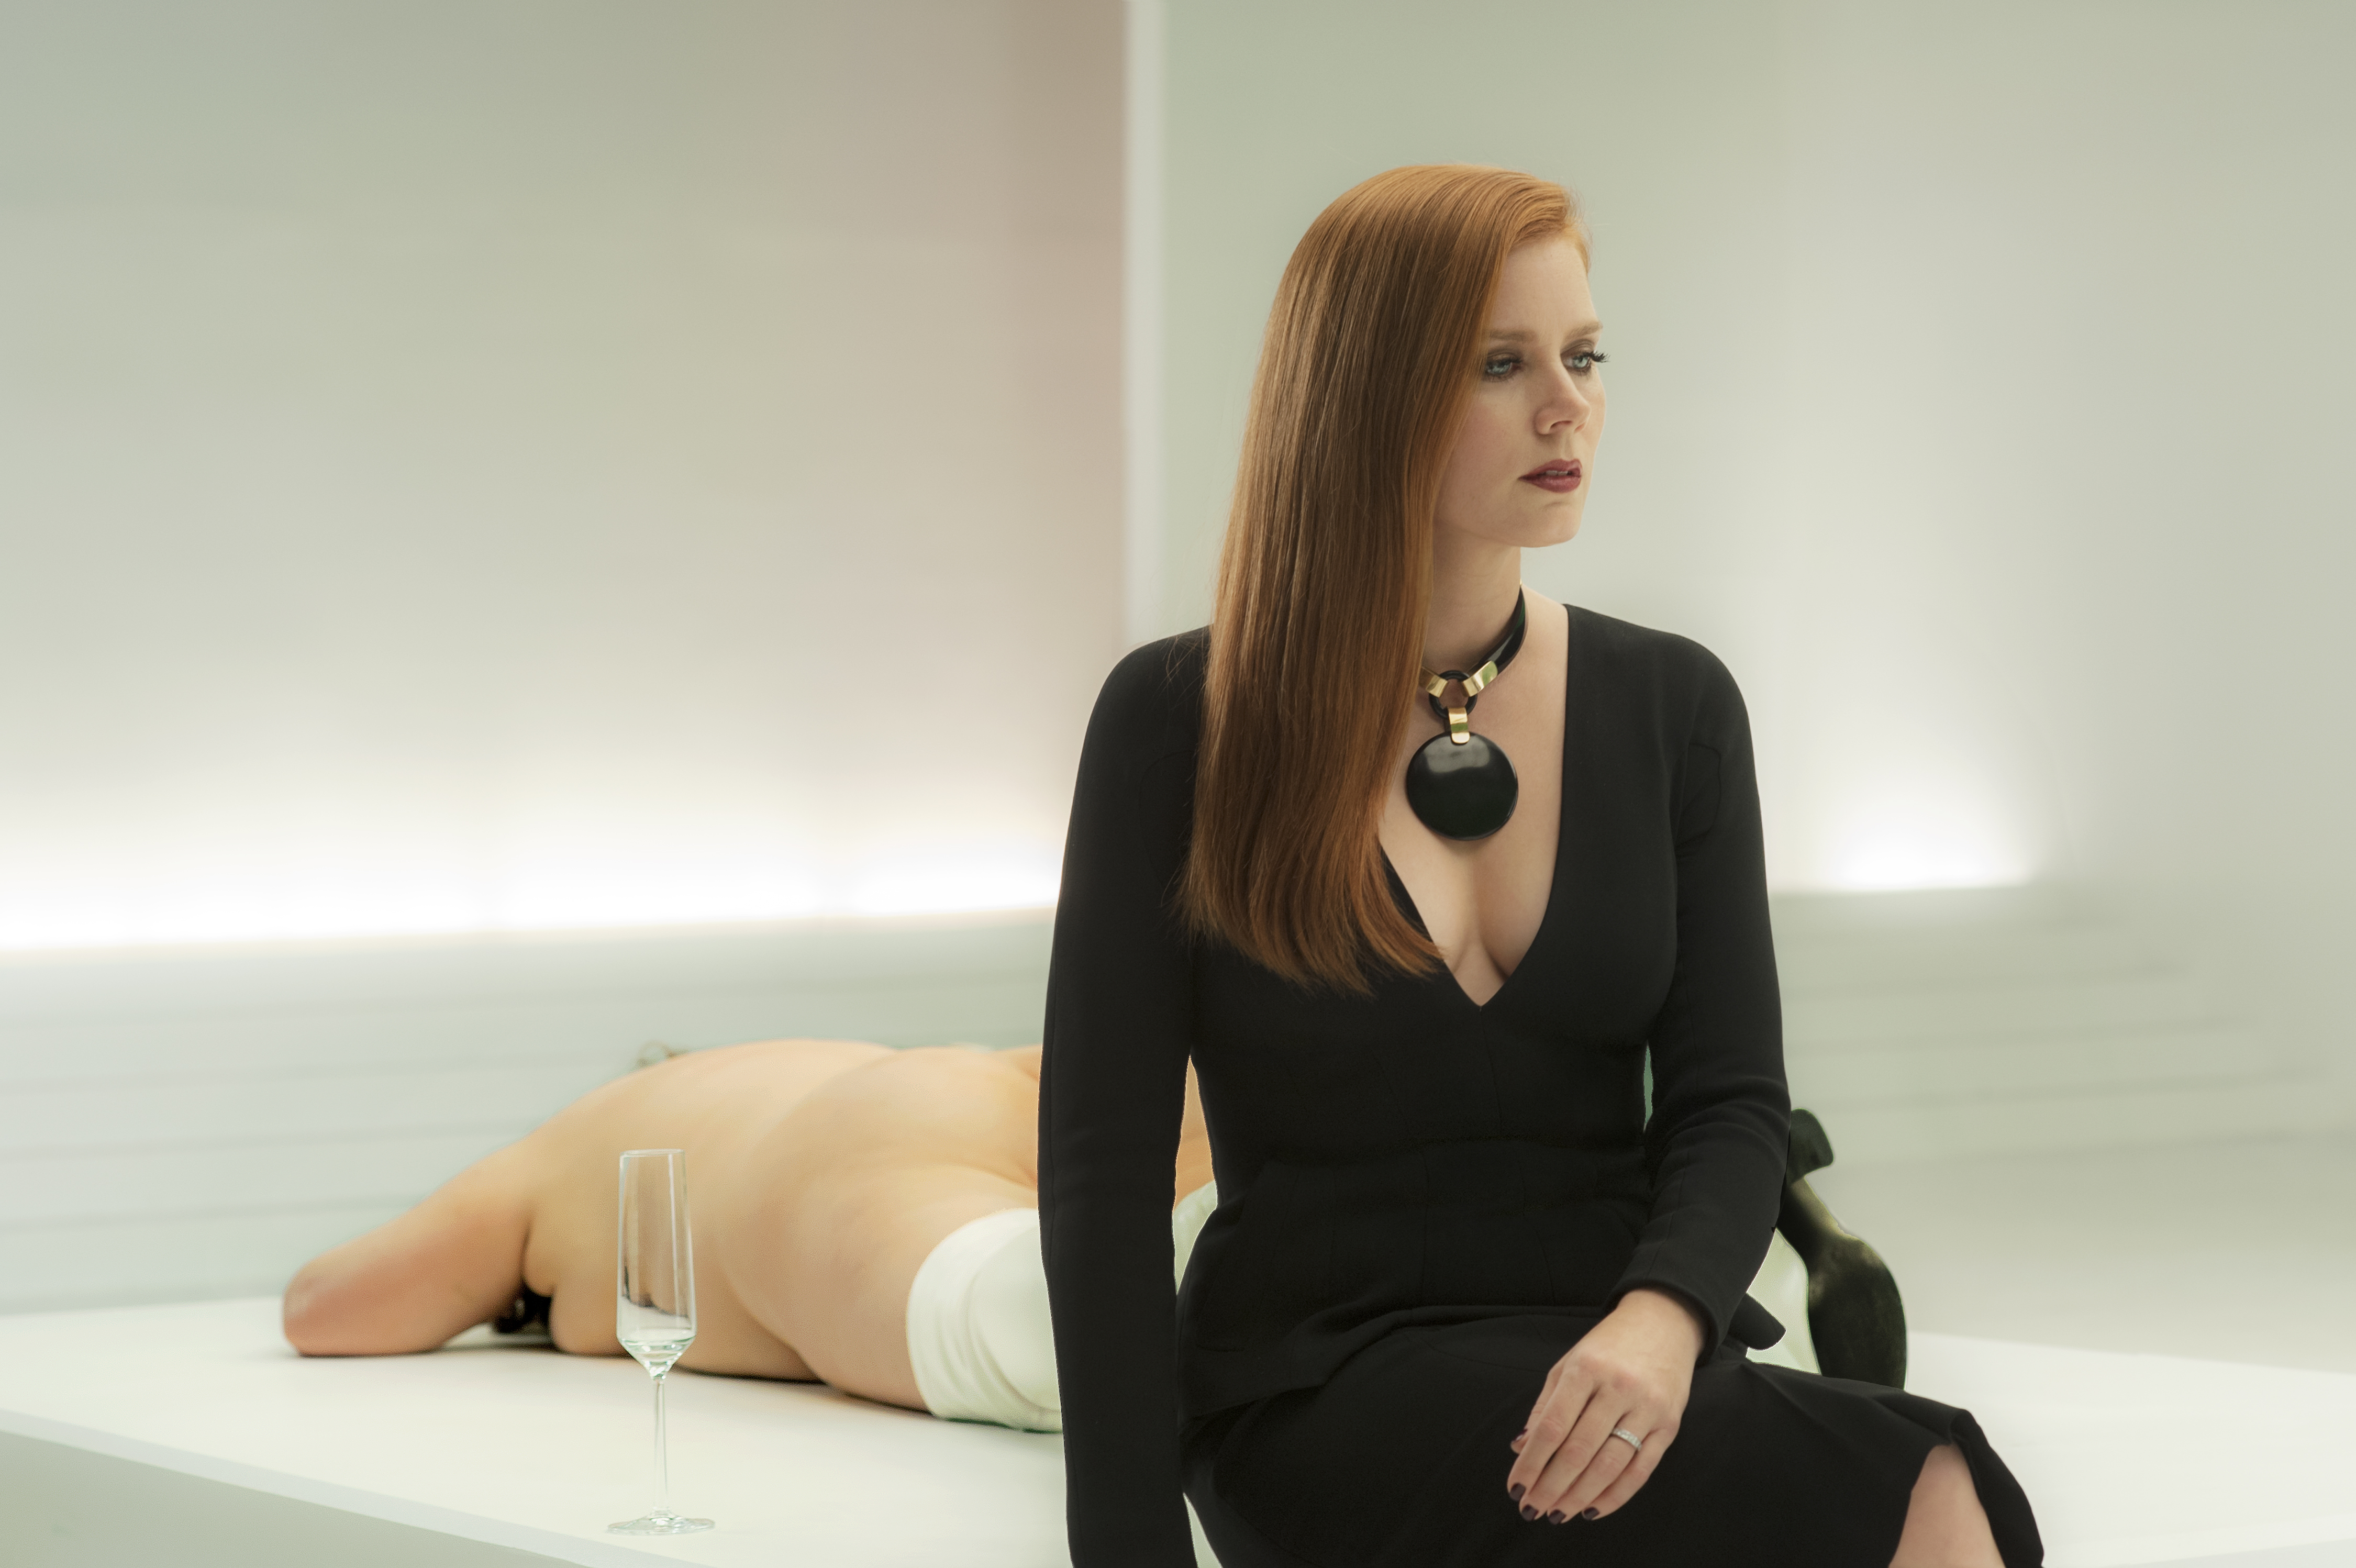 Nocturnal animals is a stylish tale of psychological revenge through